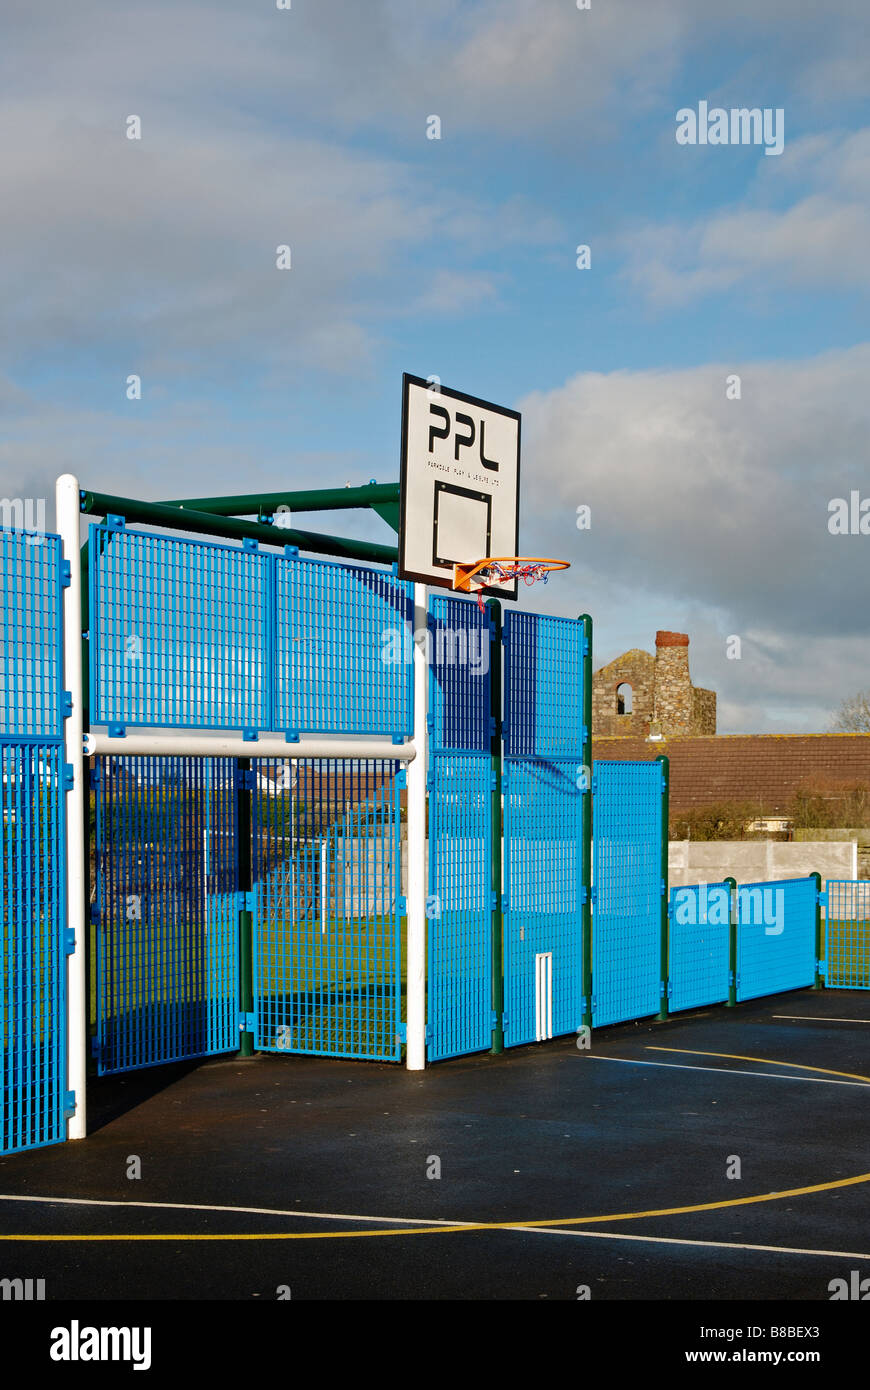 an all weather sports pitch in camborne,cornwall,uk - Stock Image